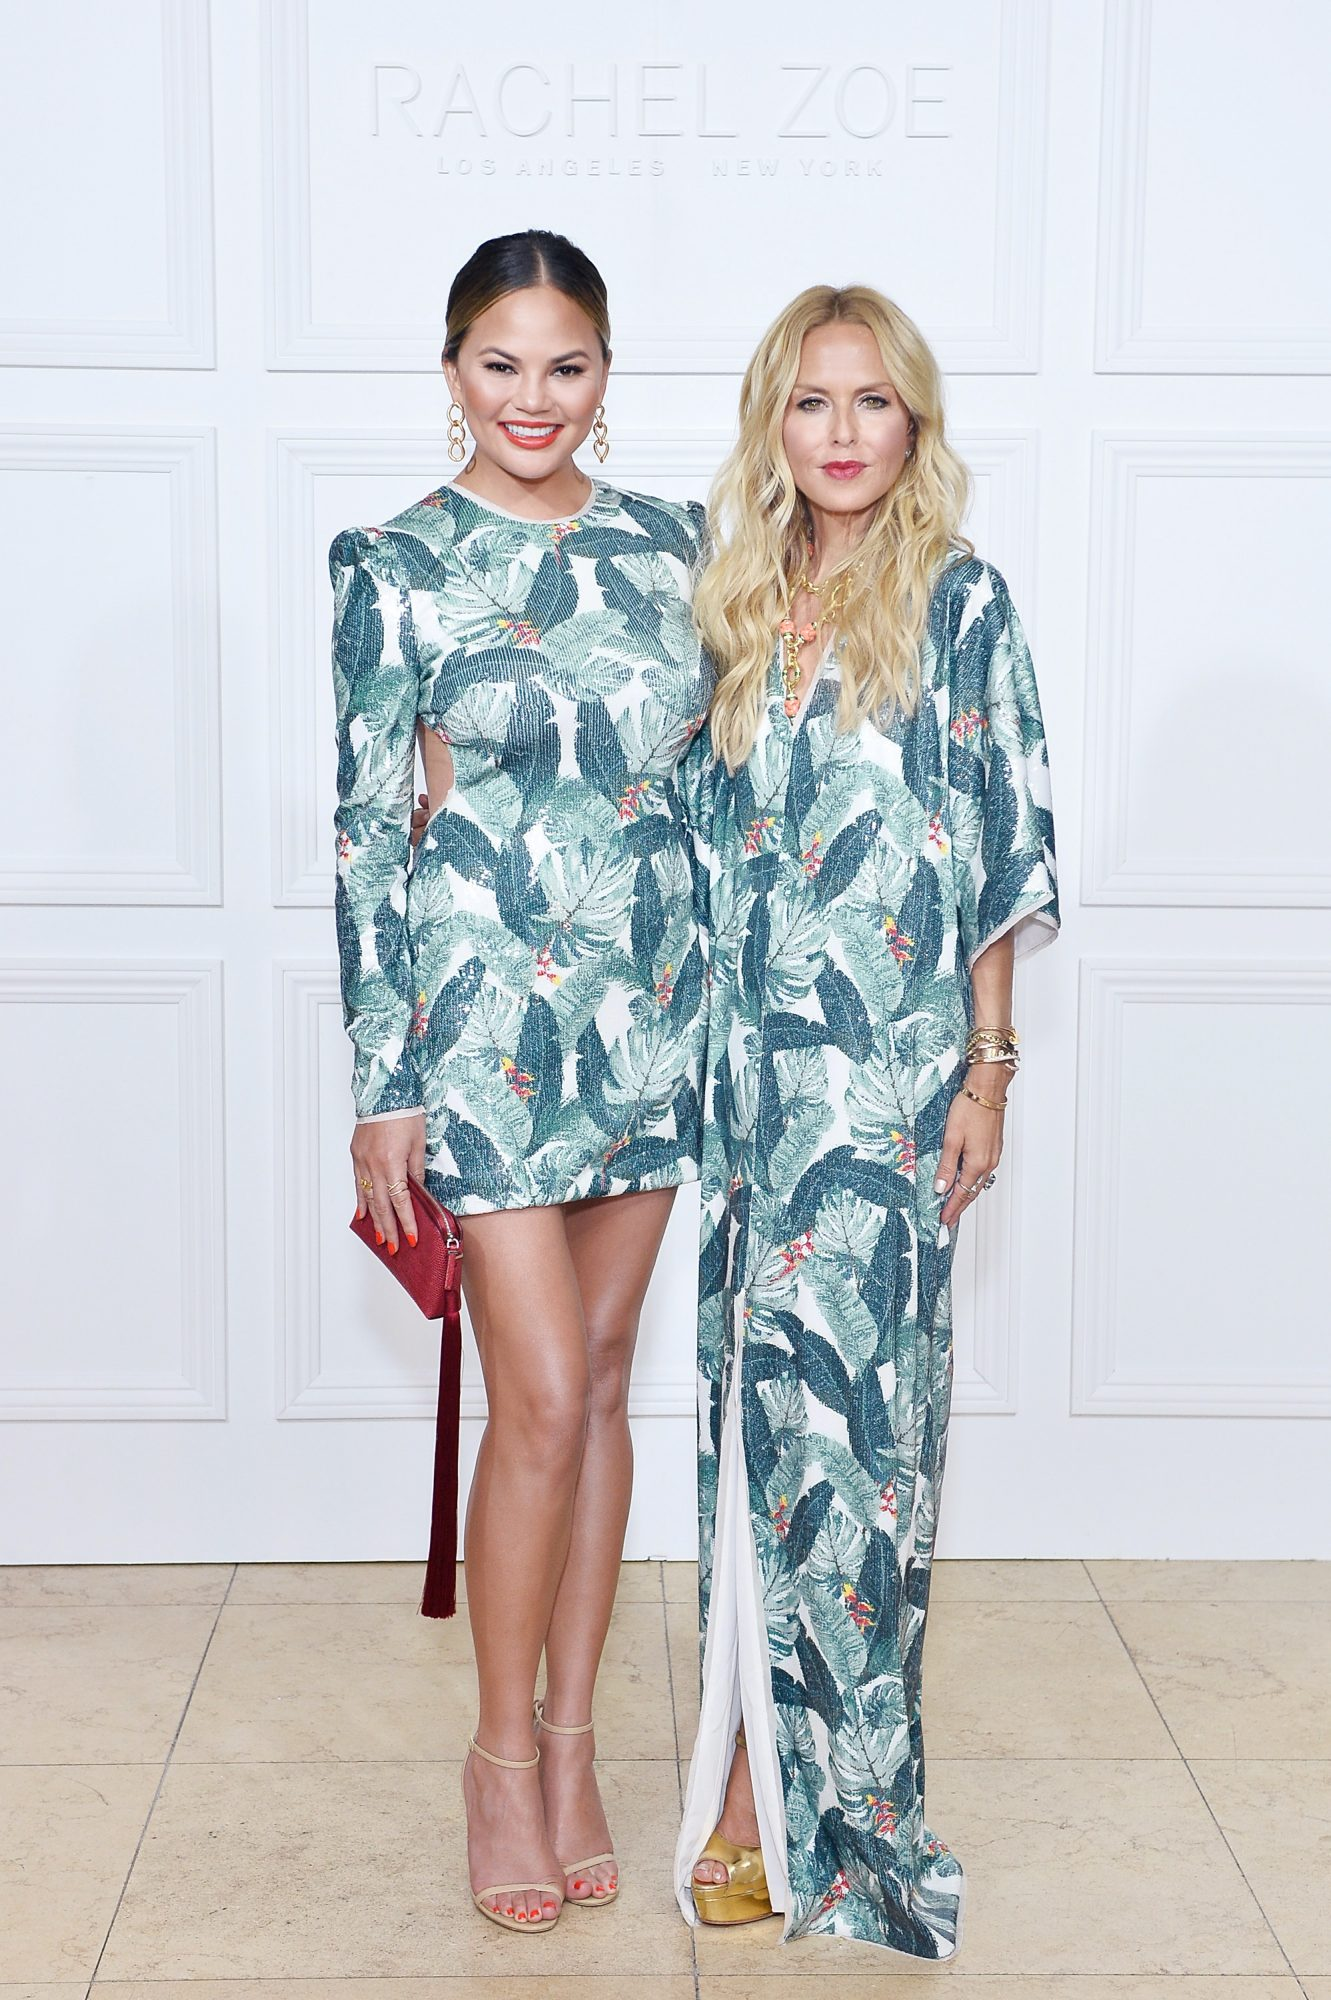 Chrissy Teigen and Rachel Zoe Twin in Palm Prints at Launch of Zoe's Bridal Collection